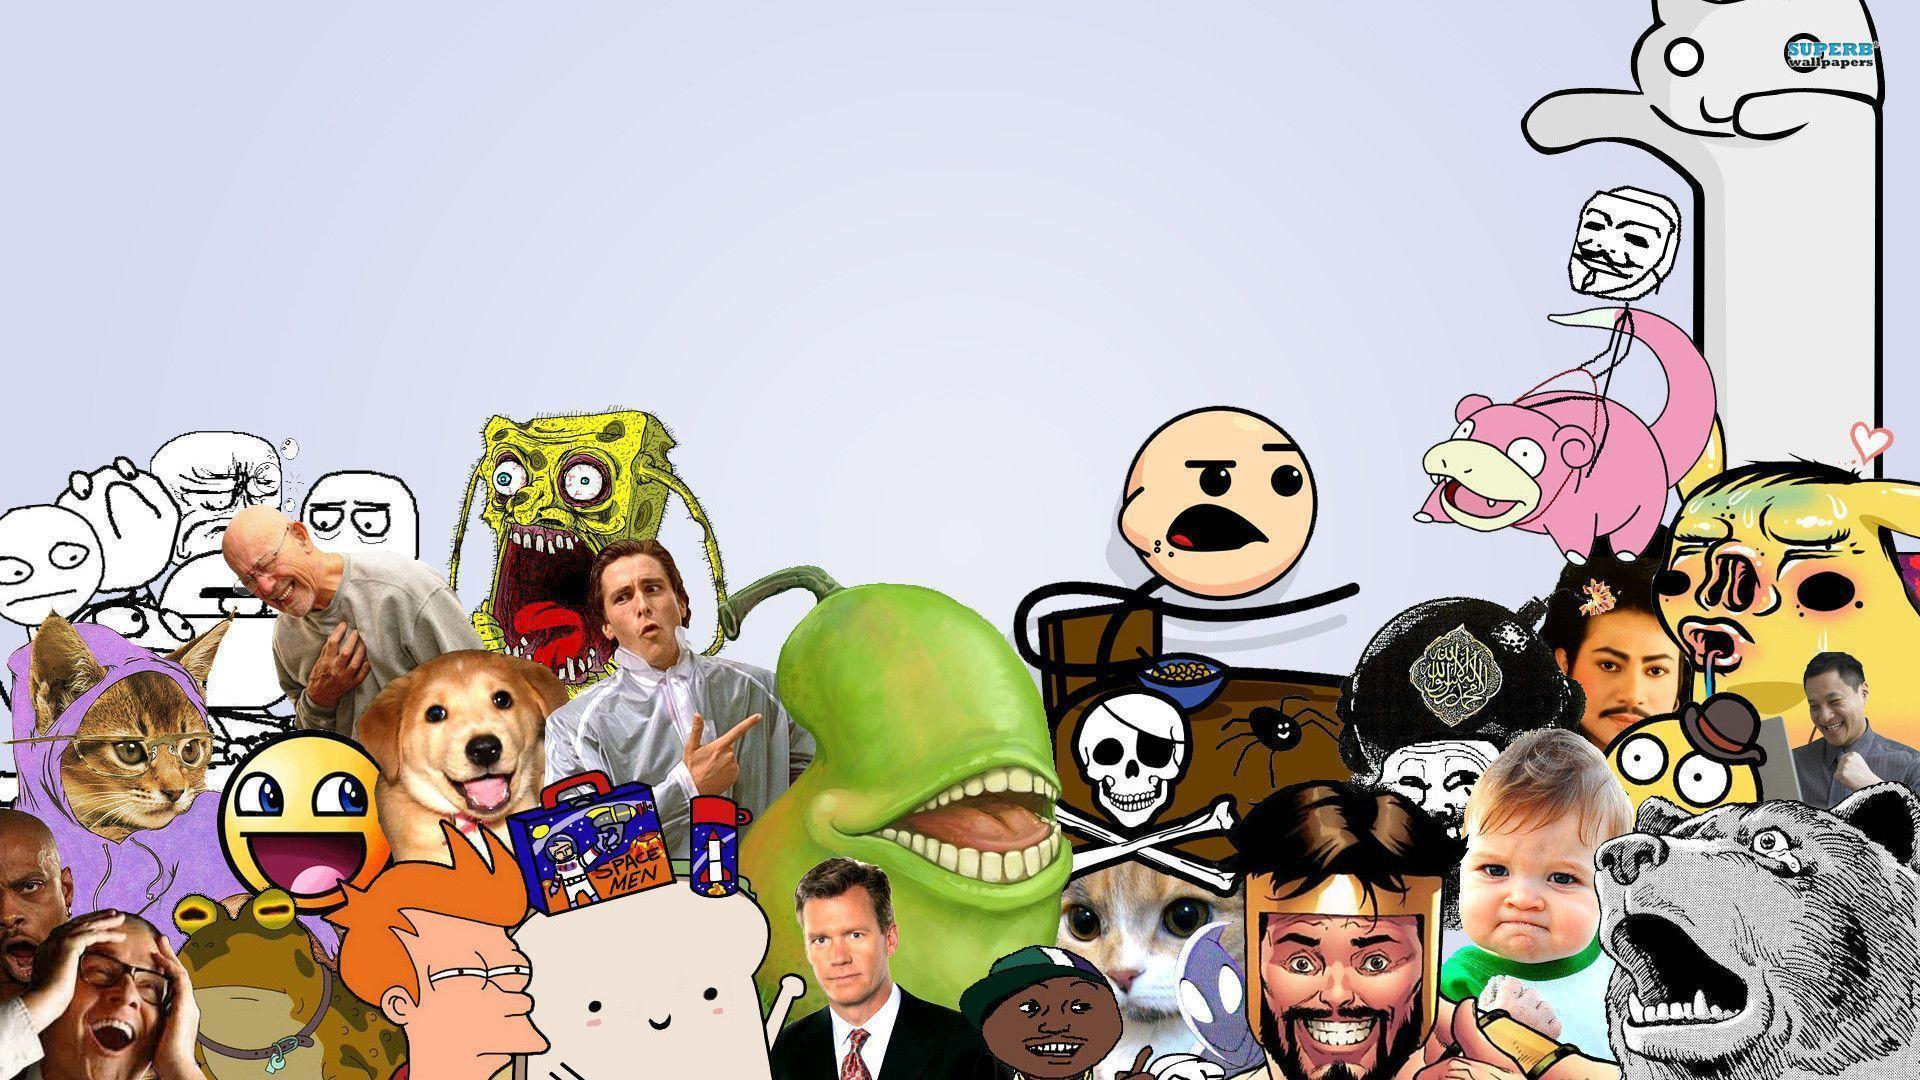 Meme Wallpaper - Memes Wallpaper (30218798) - Fanpop